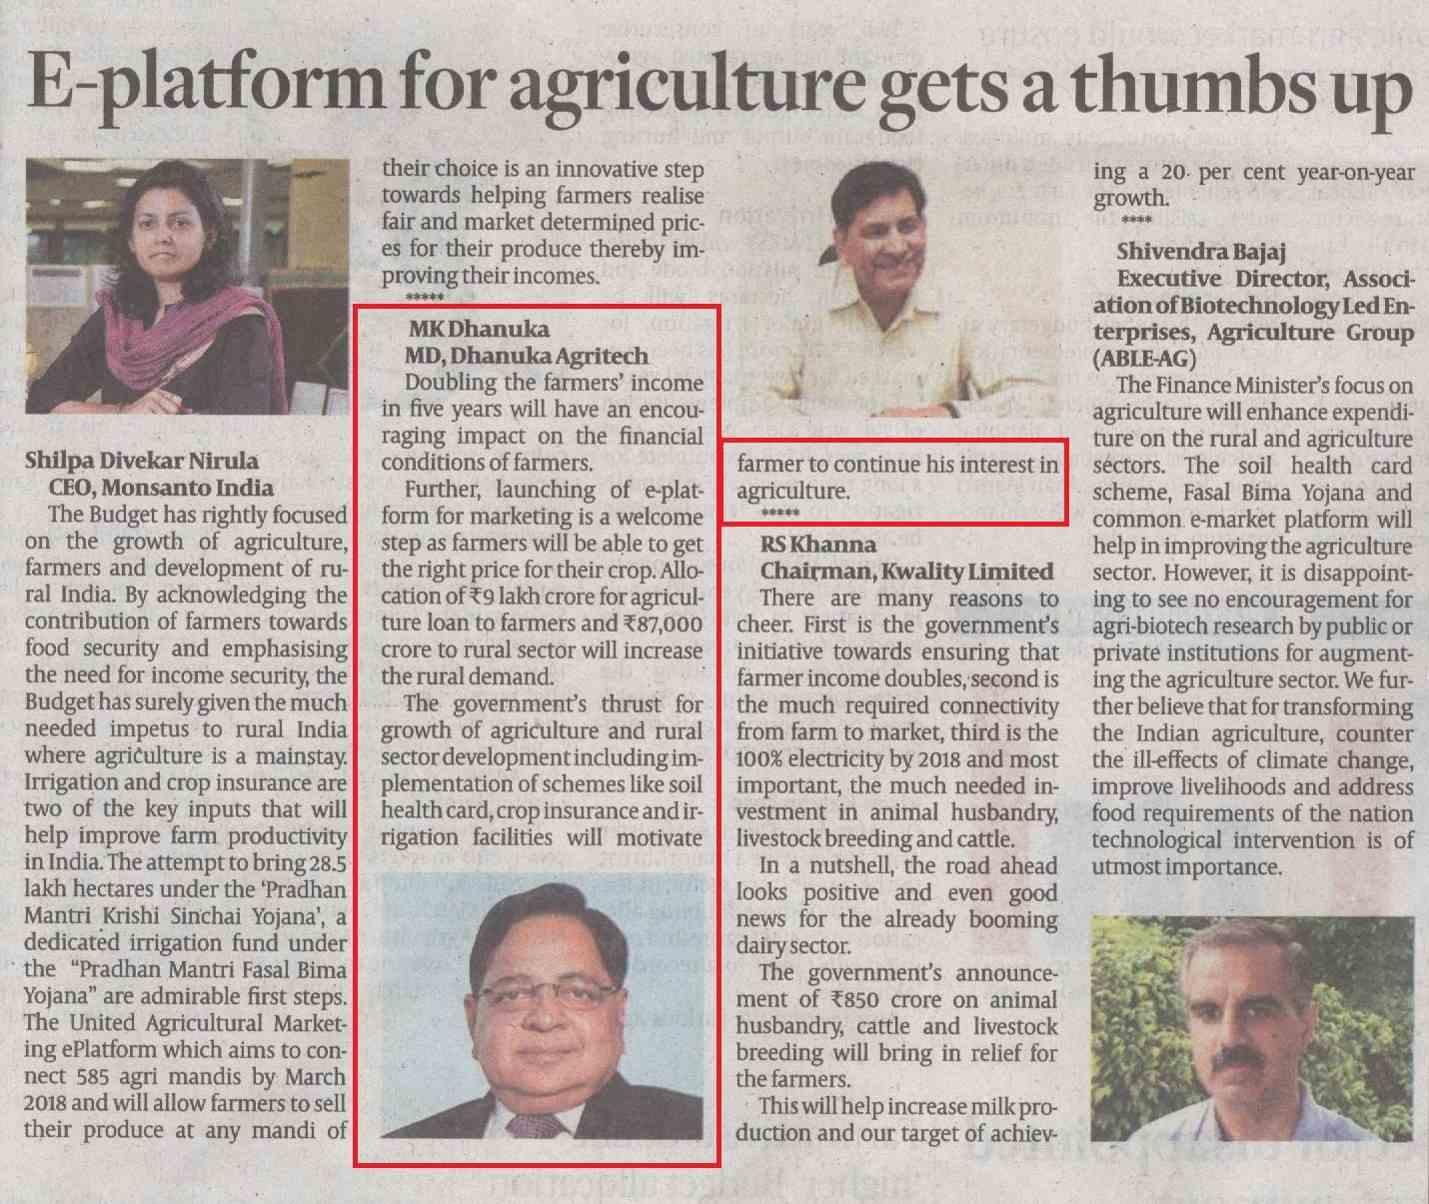 2016 Hindu Business Line - ePlatform for agriculture gets a thumbs up